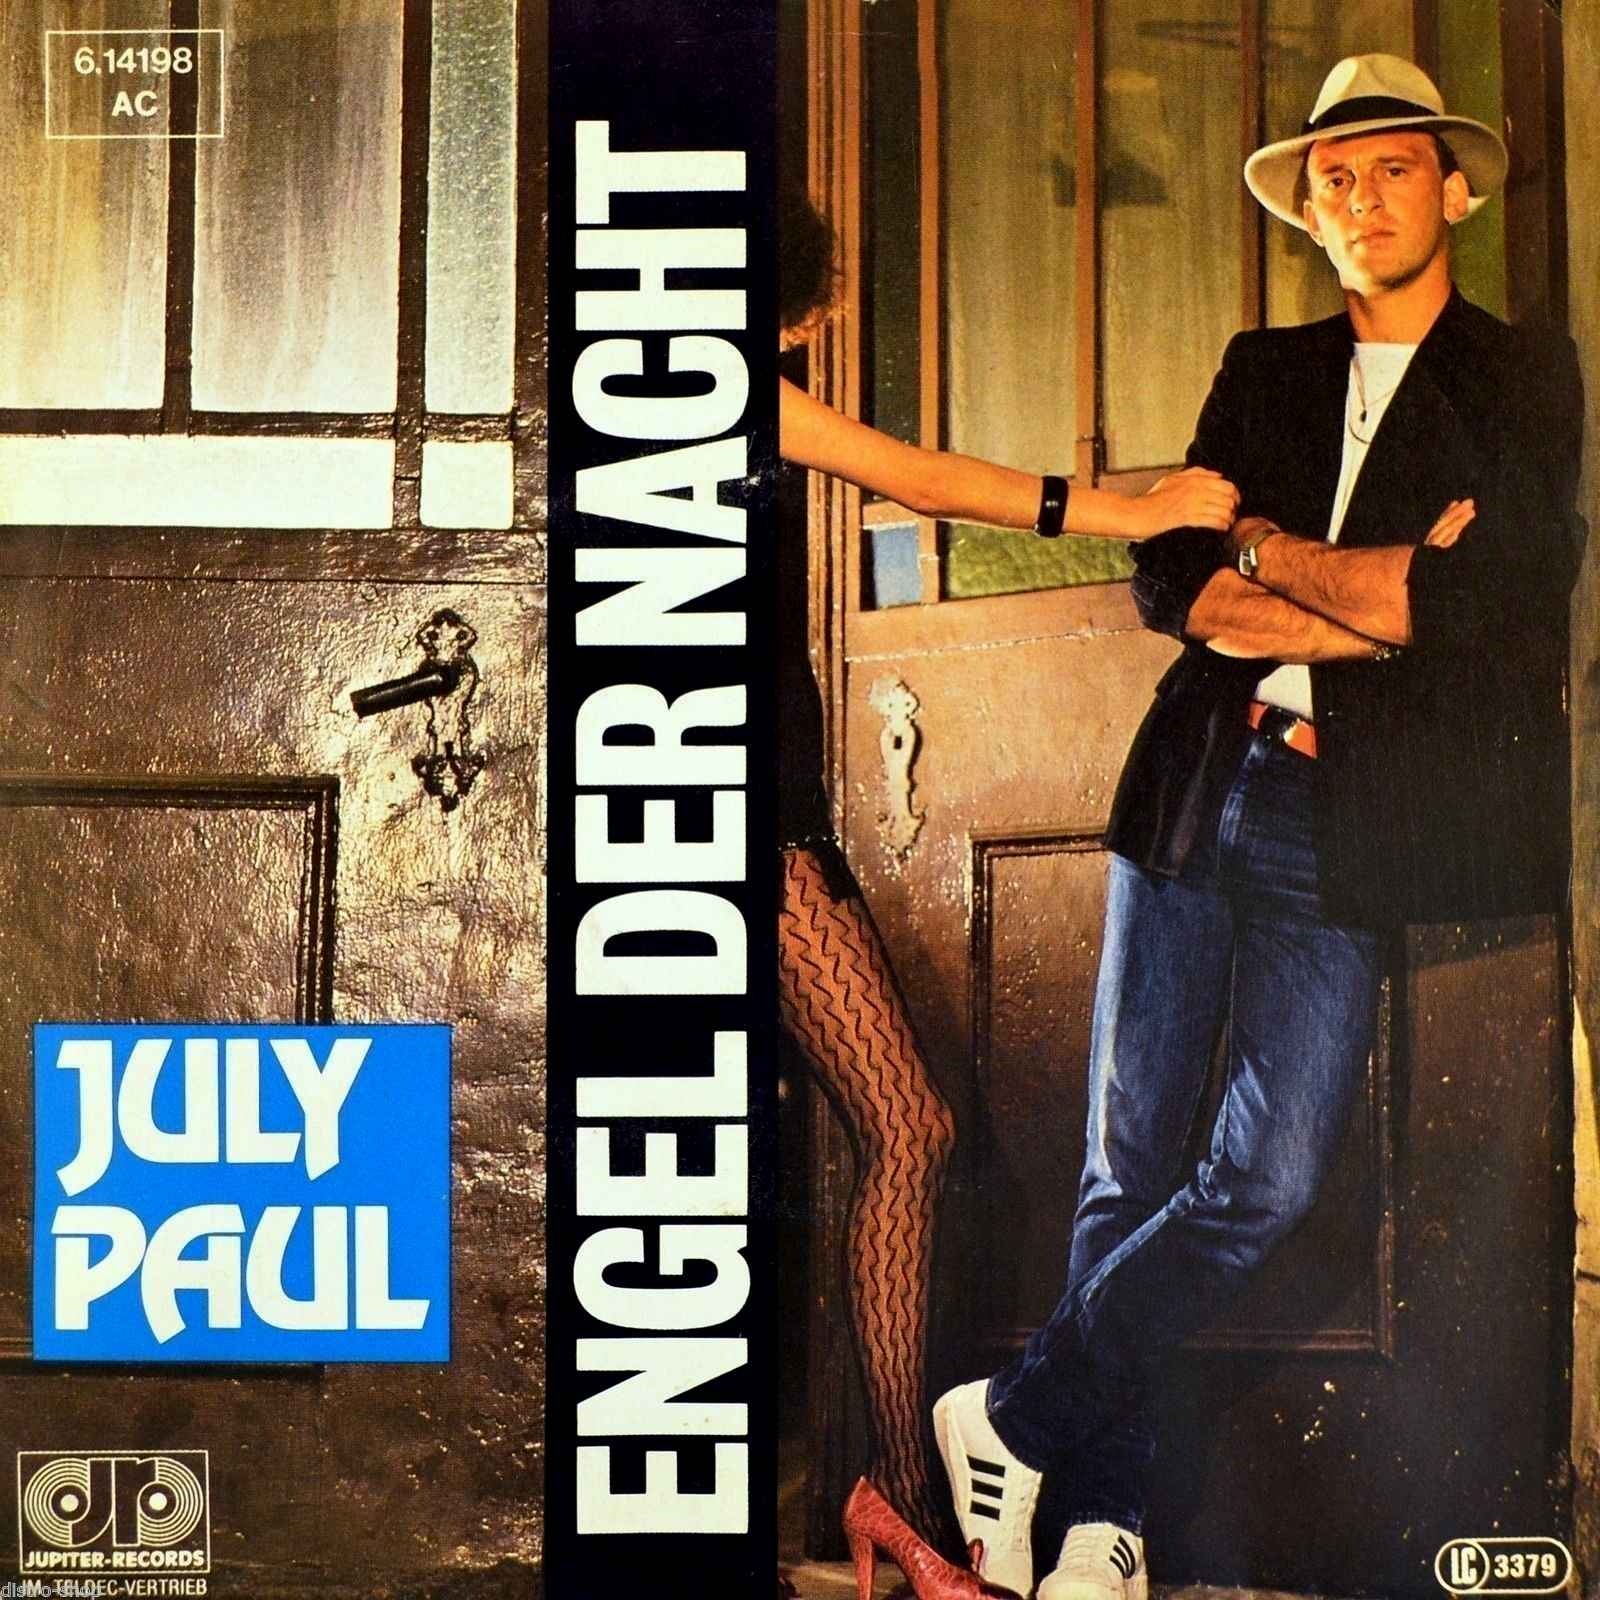 july paul album